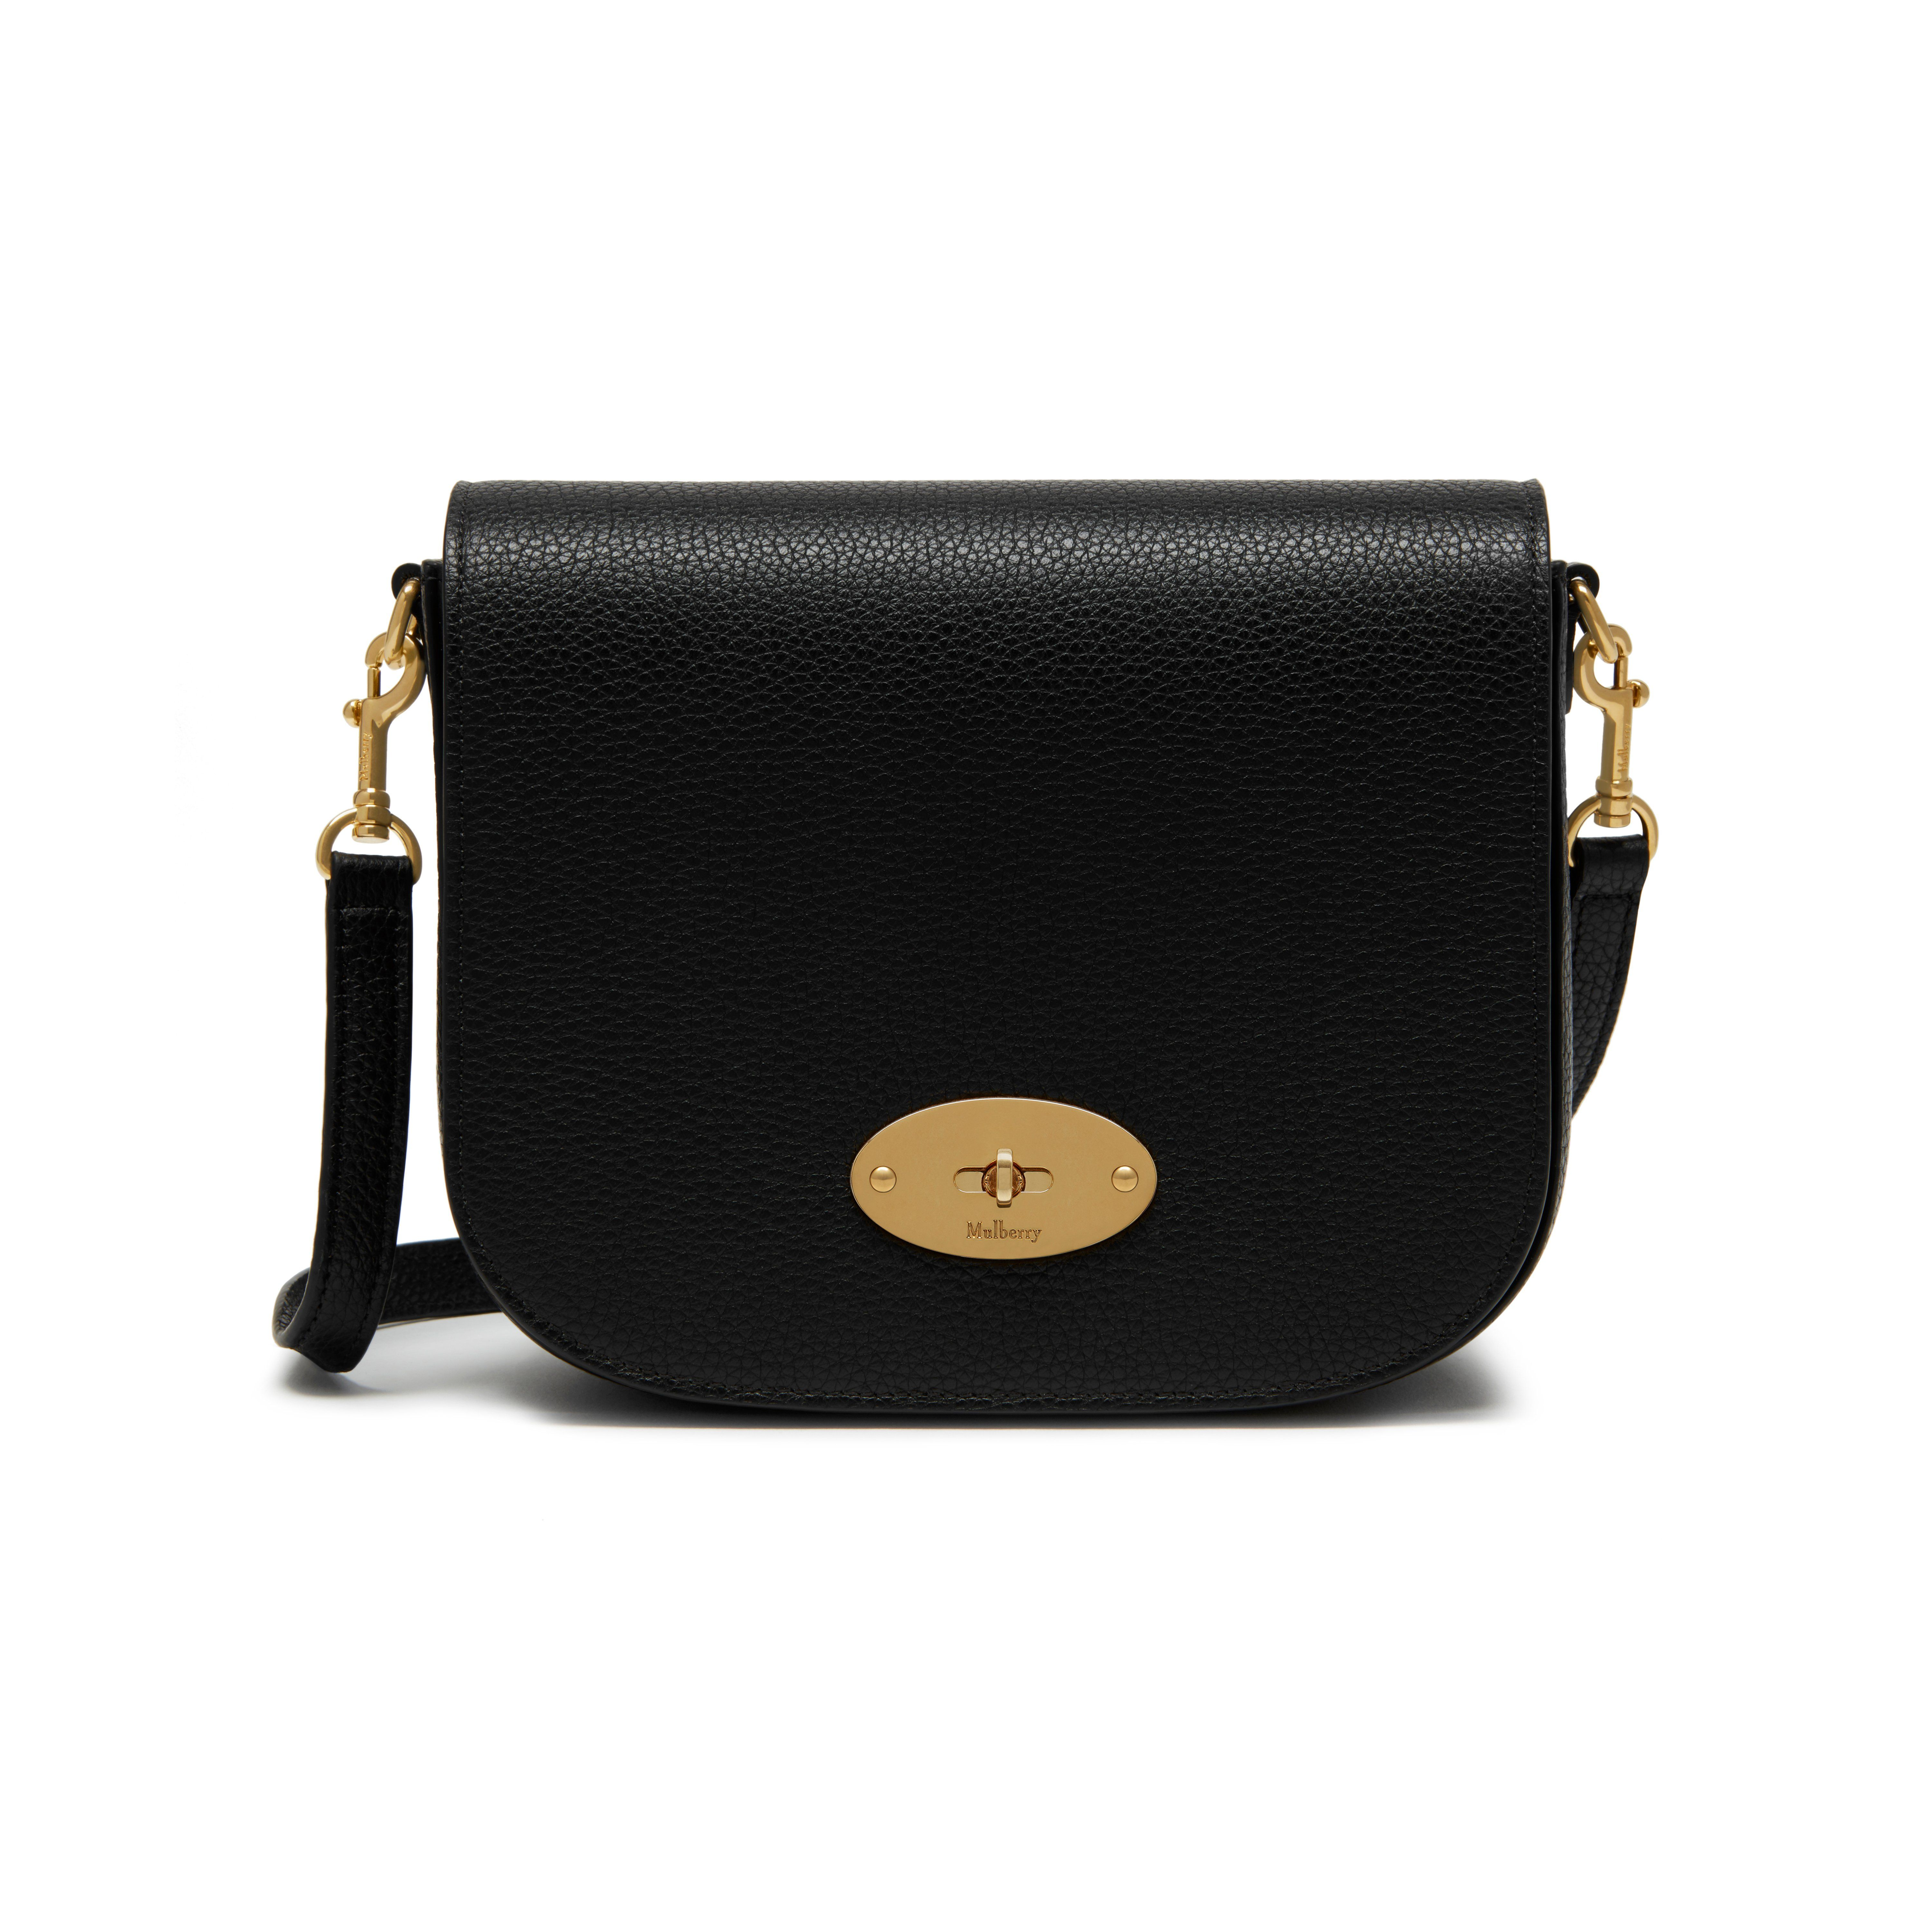 5df88a86c1d4 Small Darley Satchel